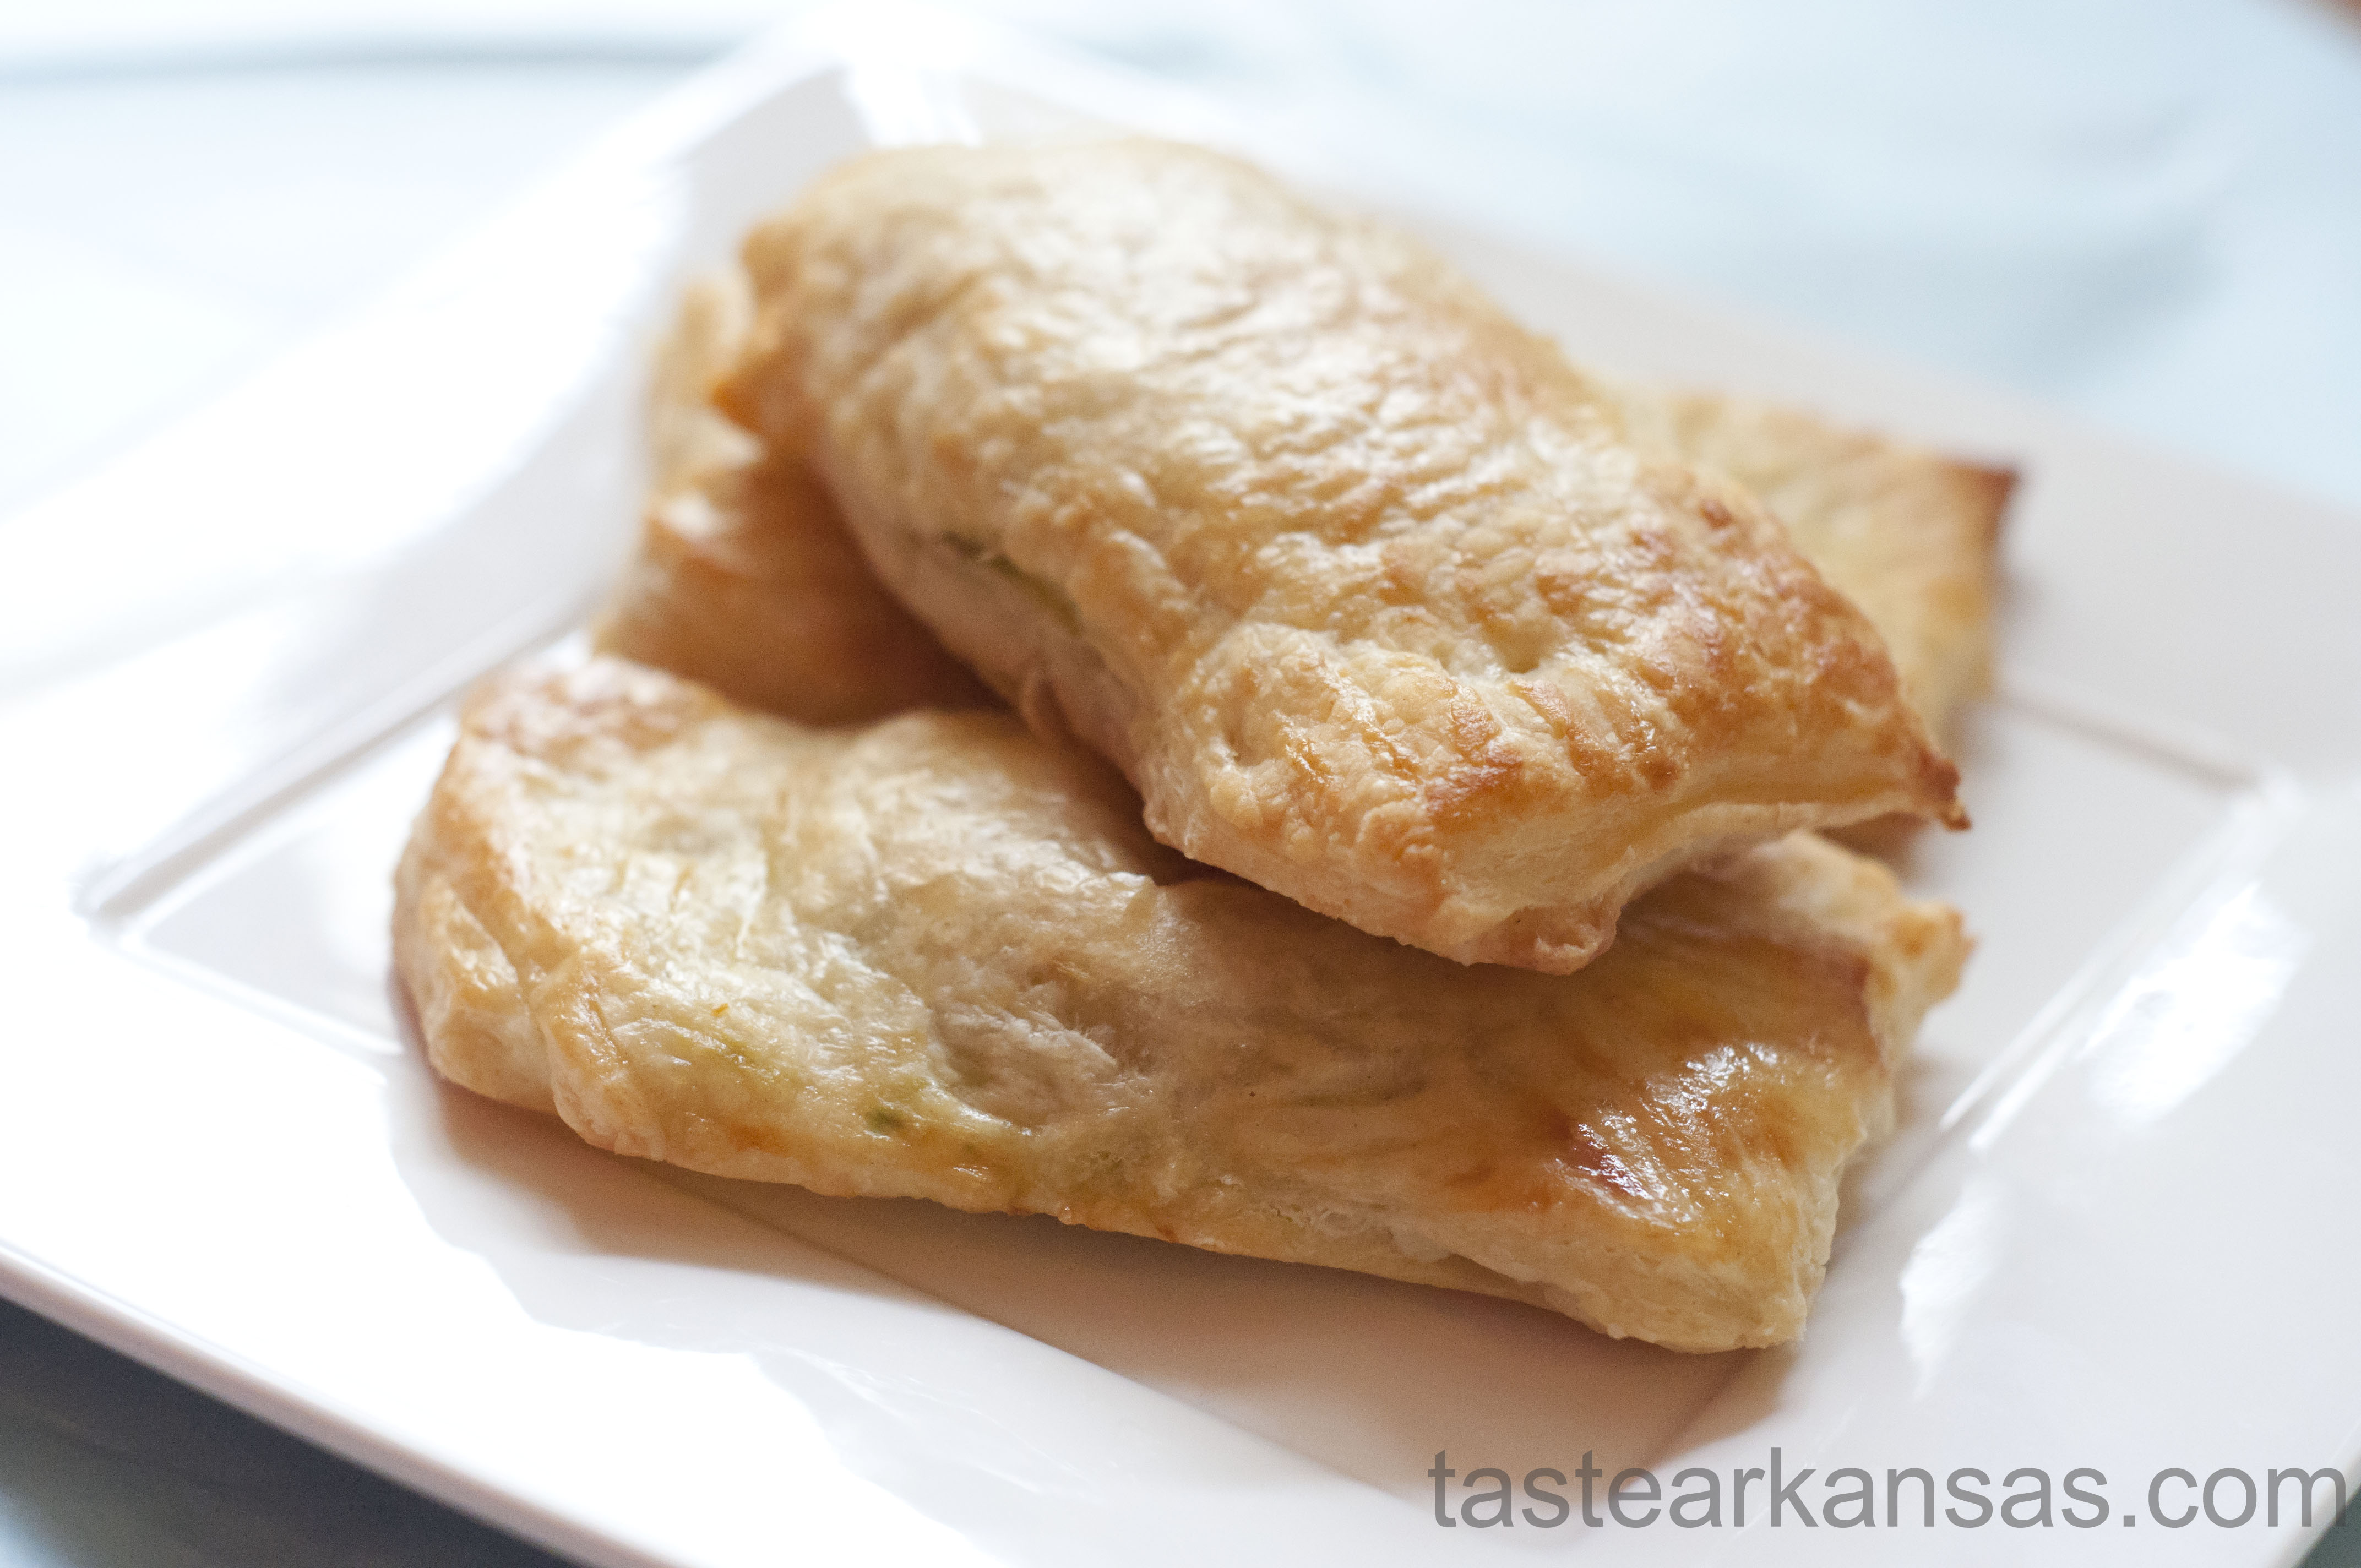 This picture shows a lightly browned, puff pastry packet that is filled with a warm mixture of avocado, cream cheese and salsa. The edges are brown and the pastry is buttery, flaky and delicious.